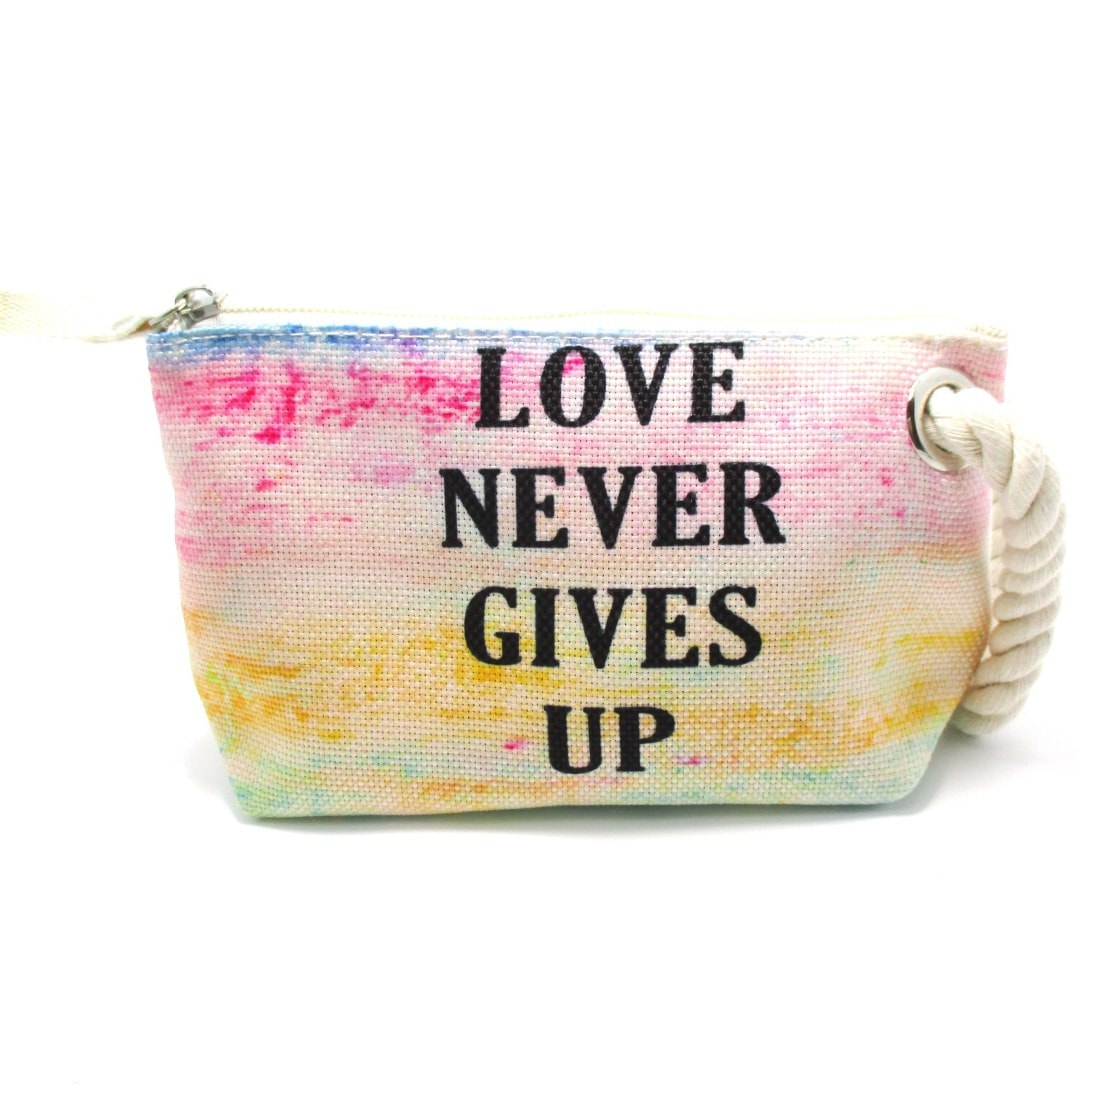 Love Never Gives Up Watercolor Clutch Make Up Bag